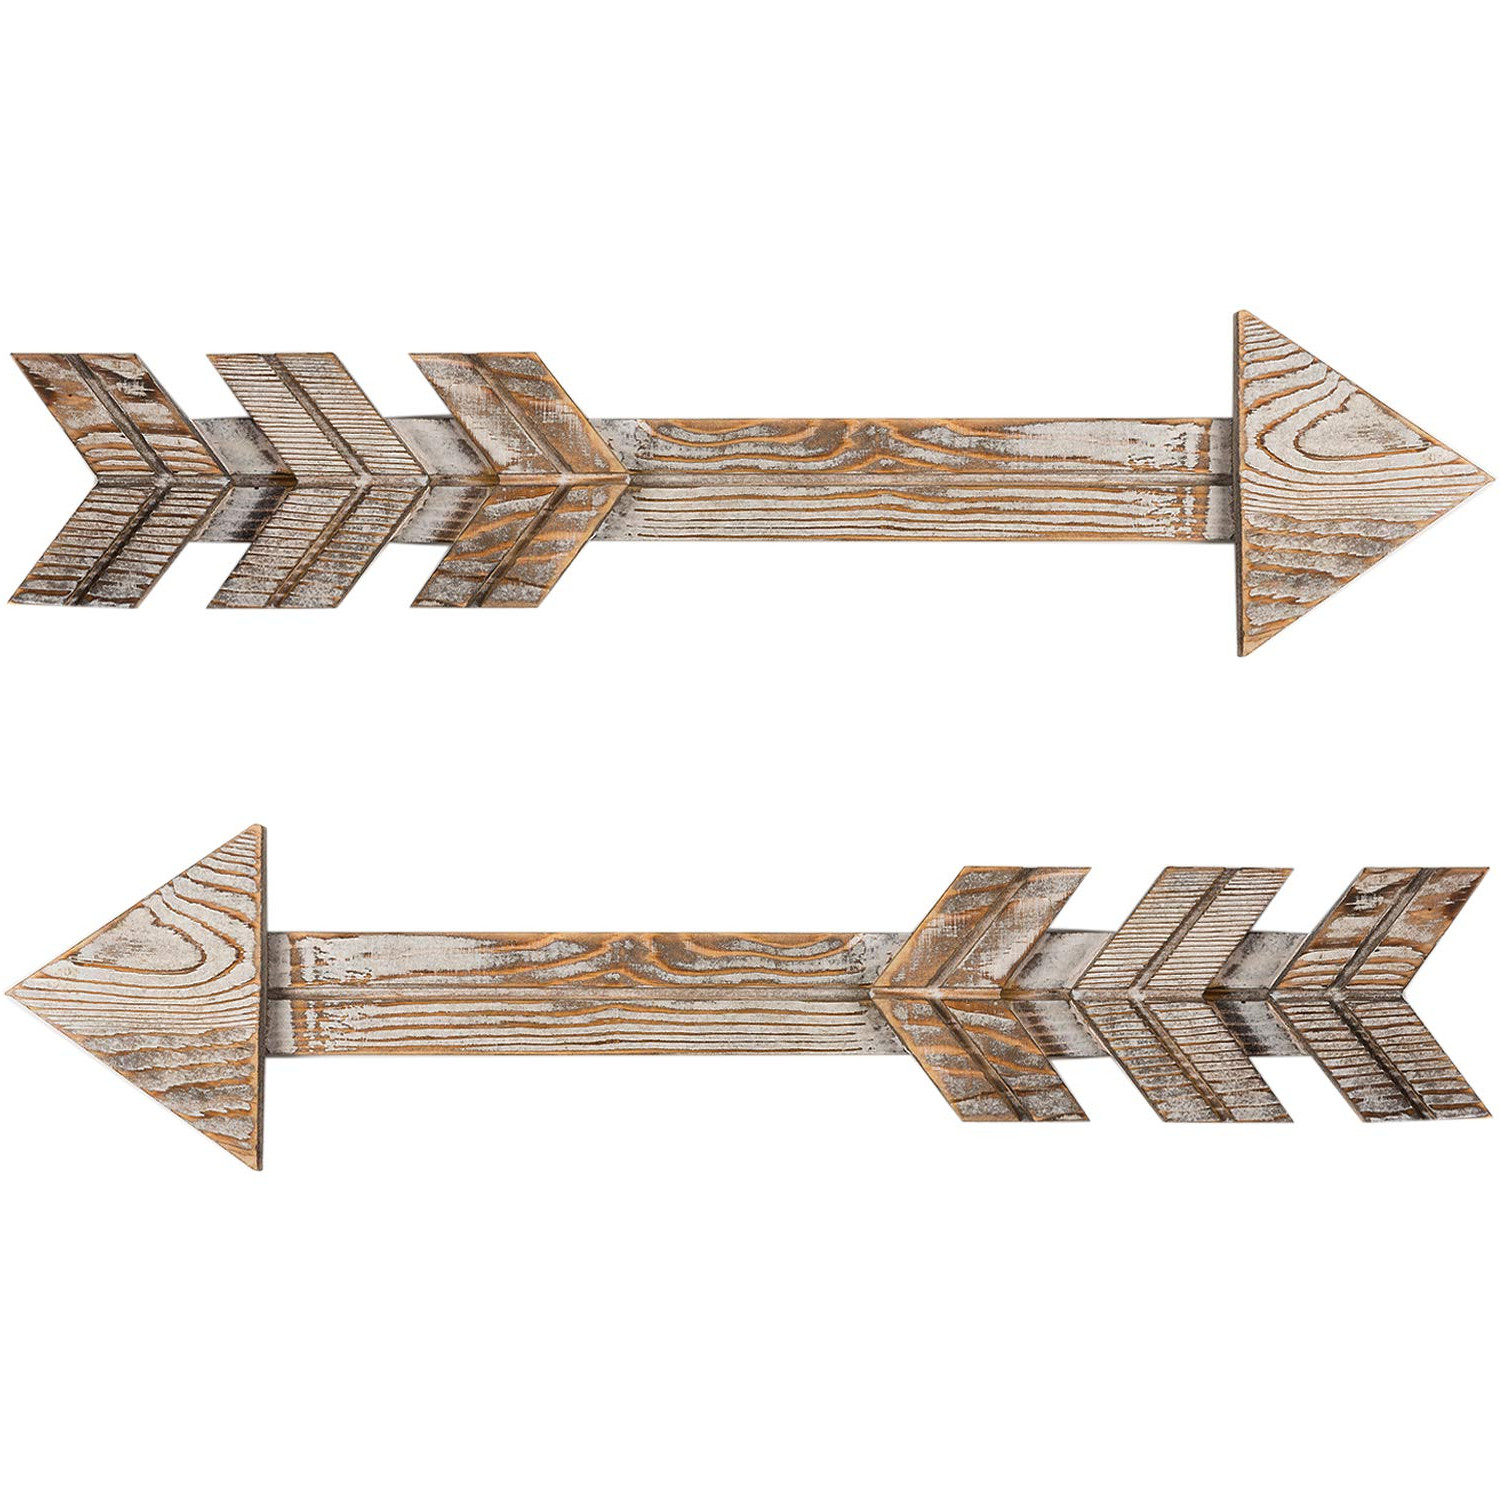 Newest Brown Metal Tribal Arrow Wall Decor Throughout Amazon: Timeyard Arrow Decor, Set Of 2 Arrows, Rustic Wood Arrow (View 11 of 20)